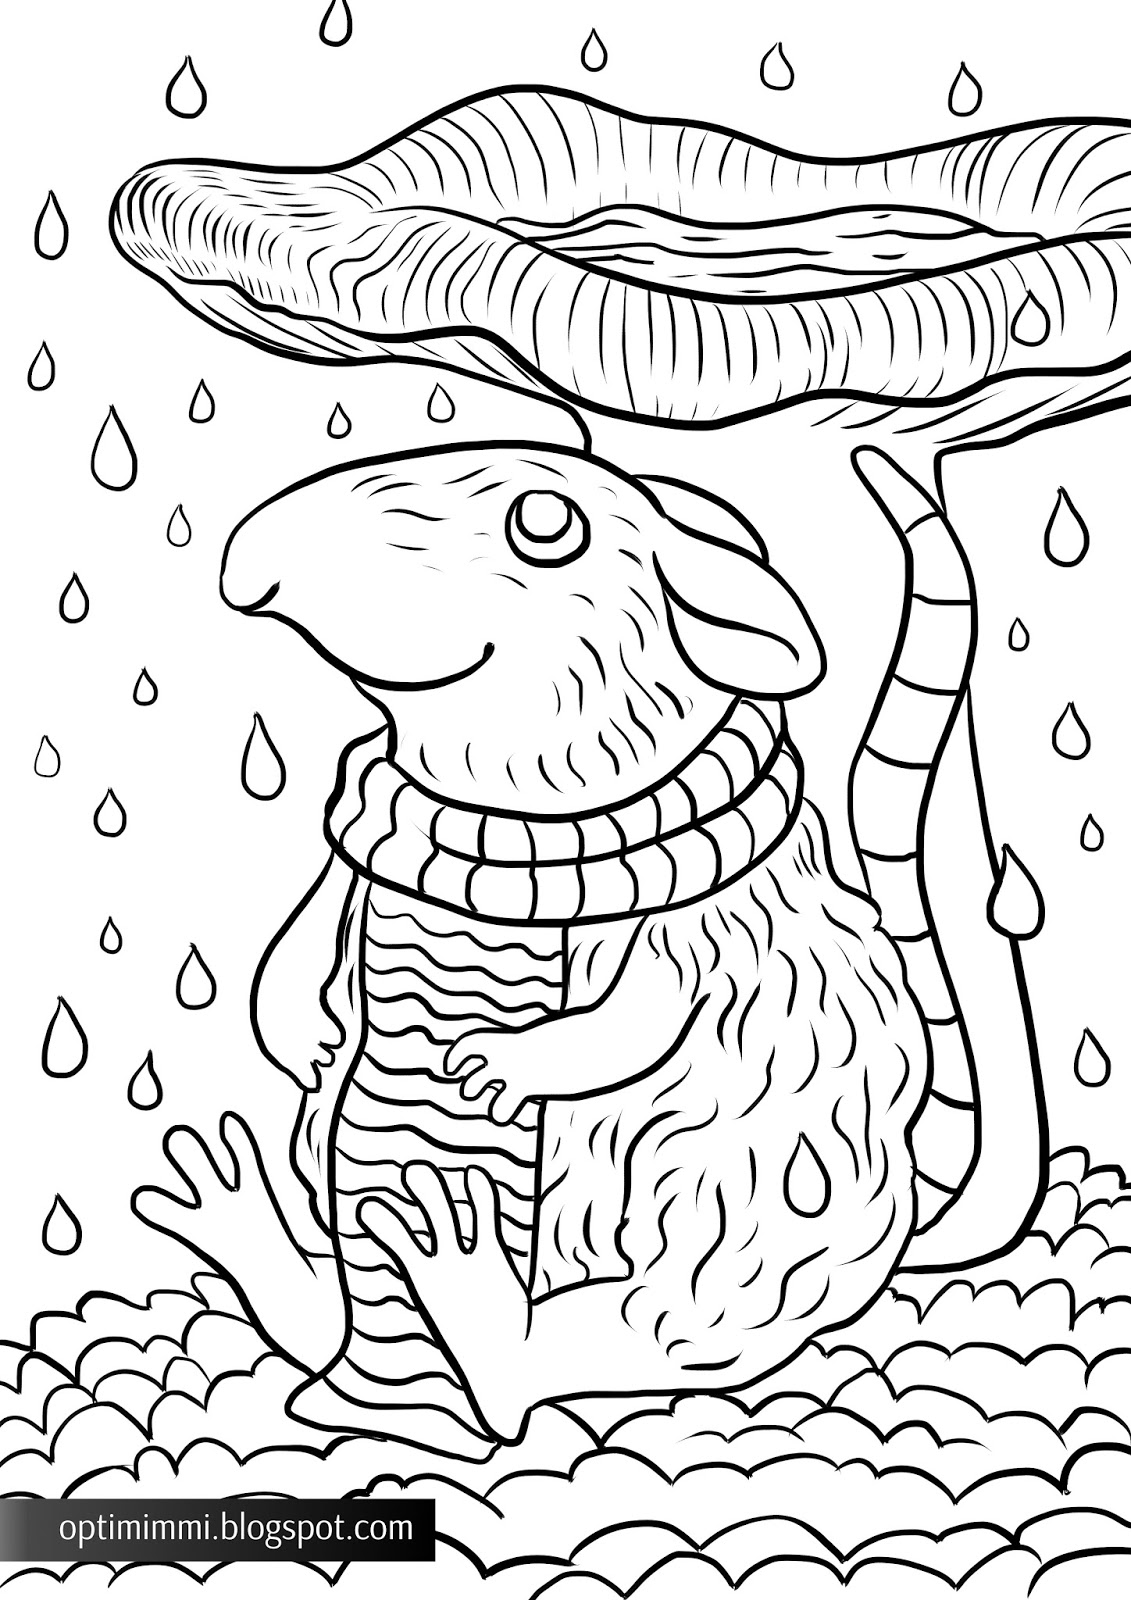 Coloring book varityskuvat - A Coloring Page About A Mouse And A Mushroom In The Rain V Rityskuva Hiirest Ja